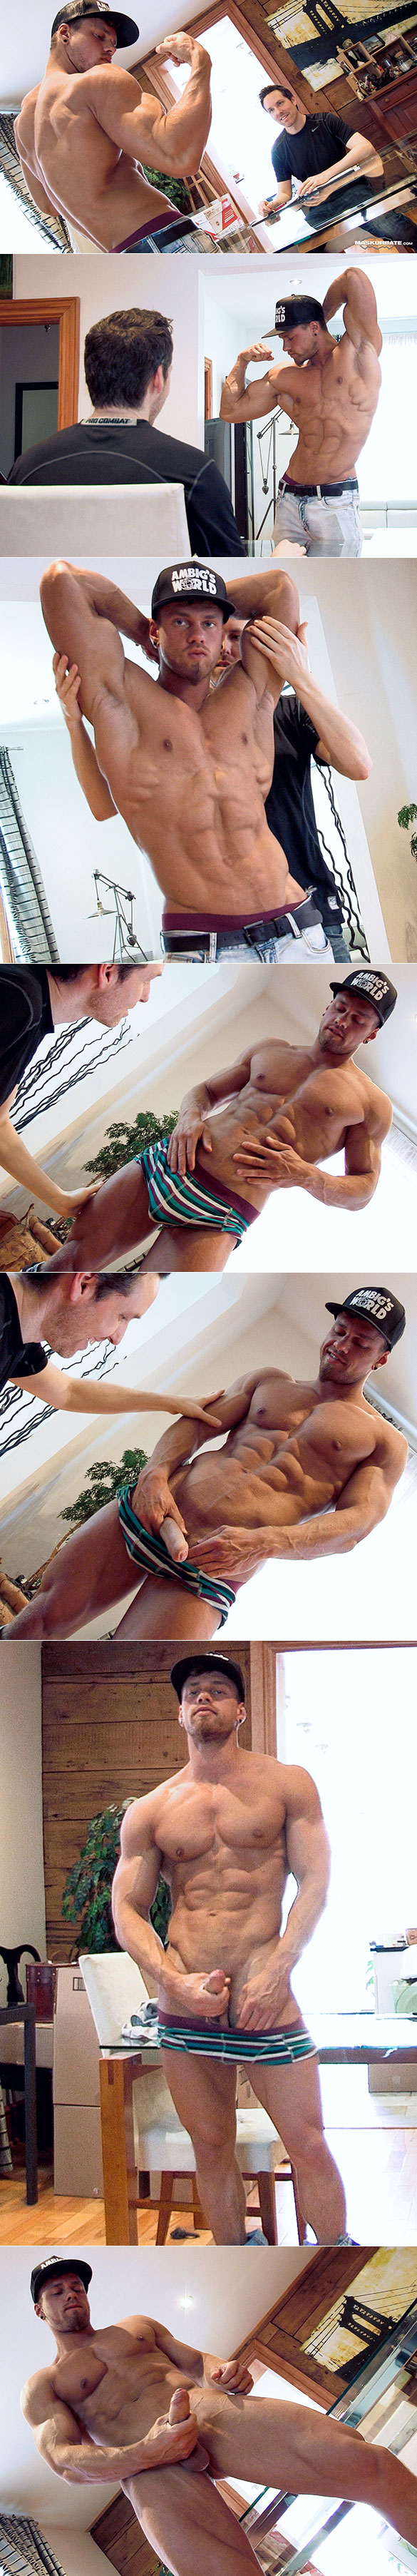 """Maskurbate: Big-dicked bodybuilder Brad rubs one out in """"Moving Muscles"""""""